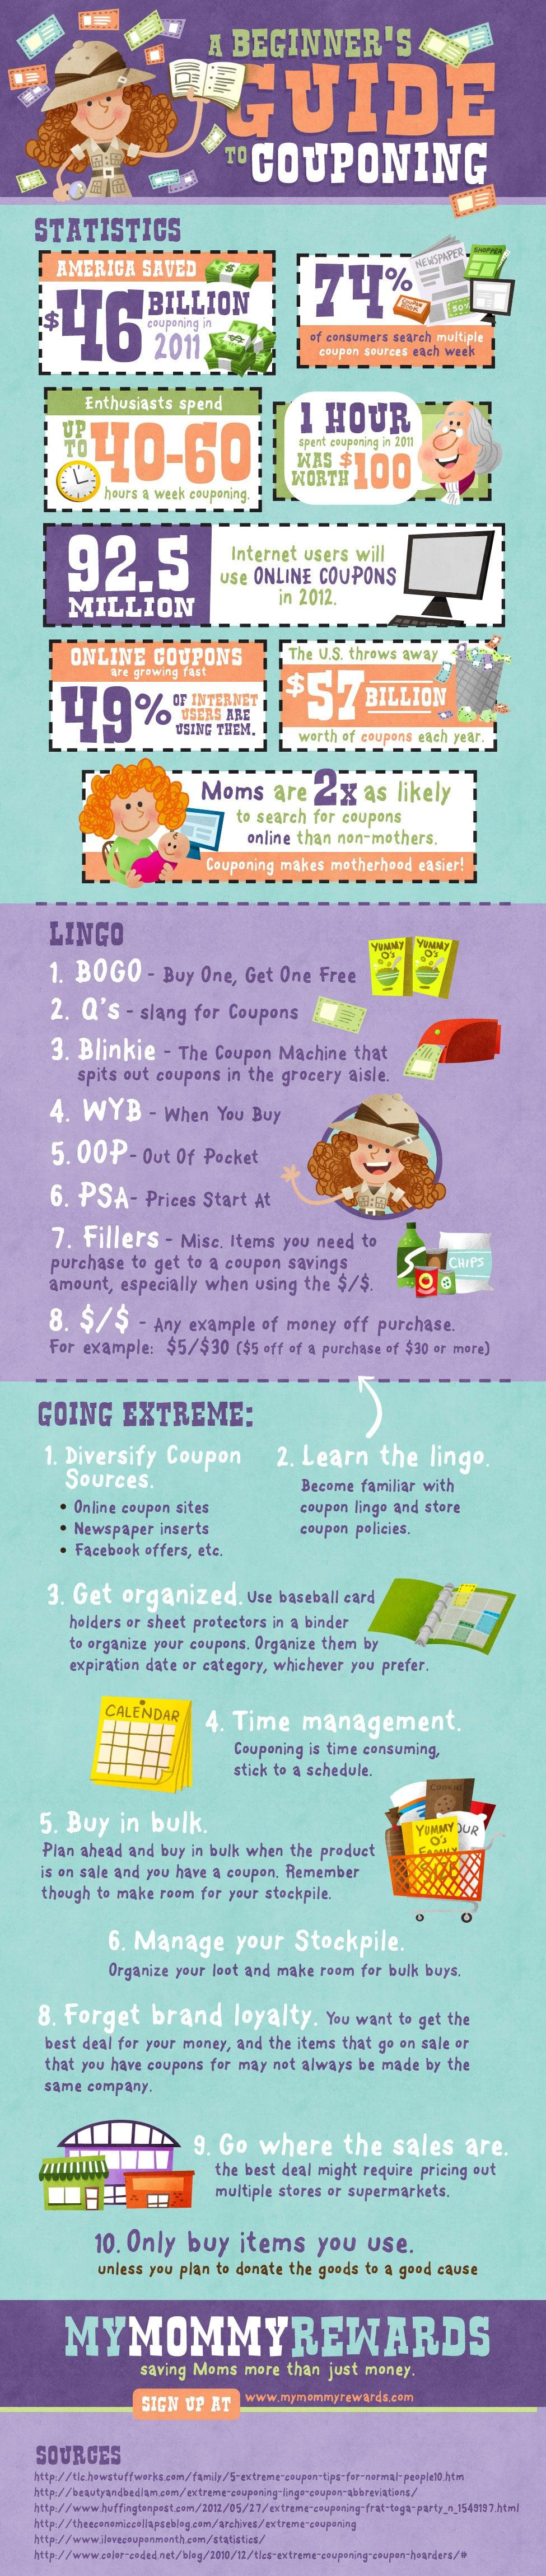 Couponing Guide For Beginners